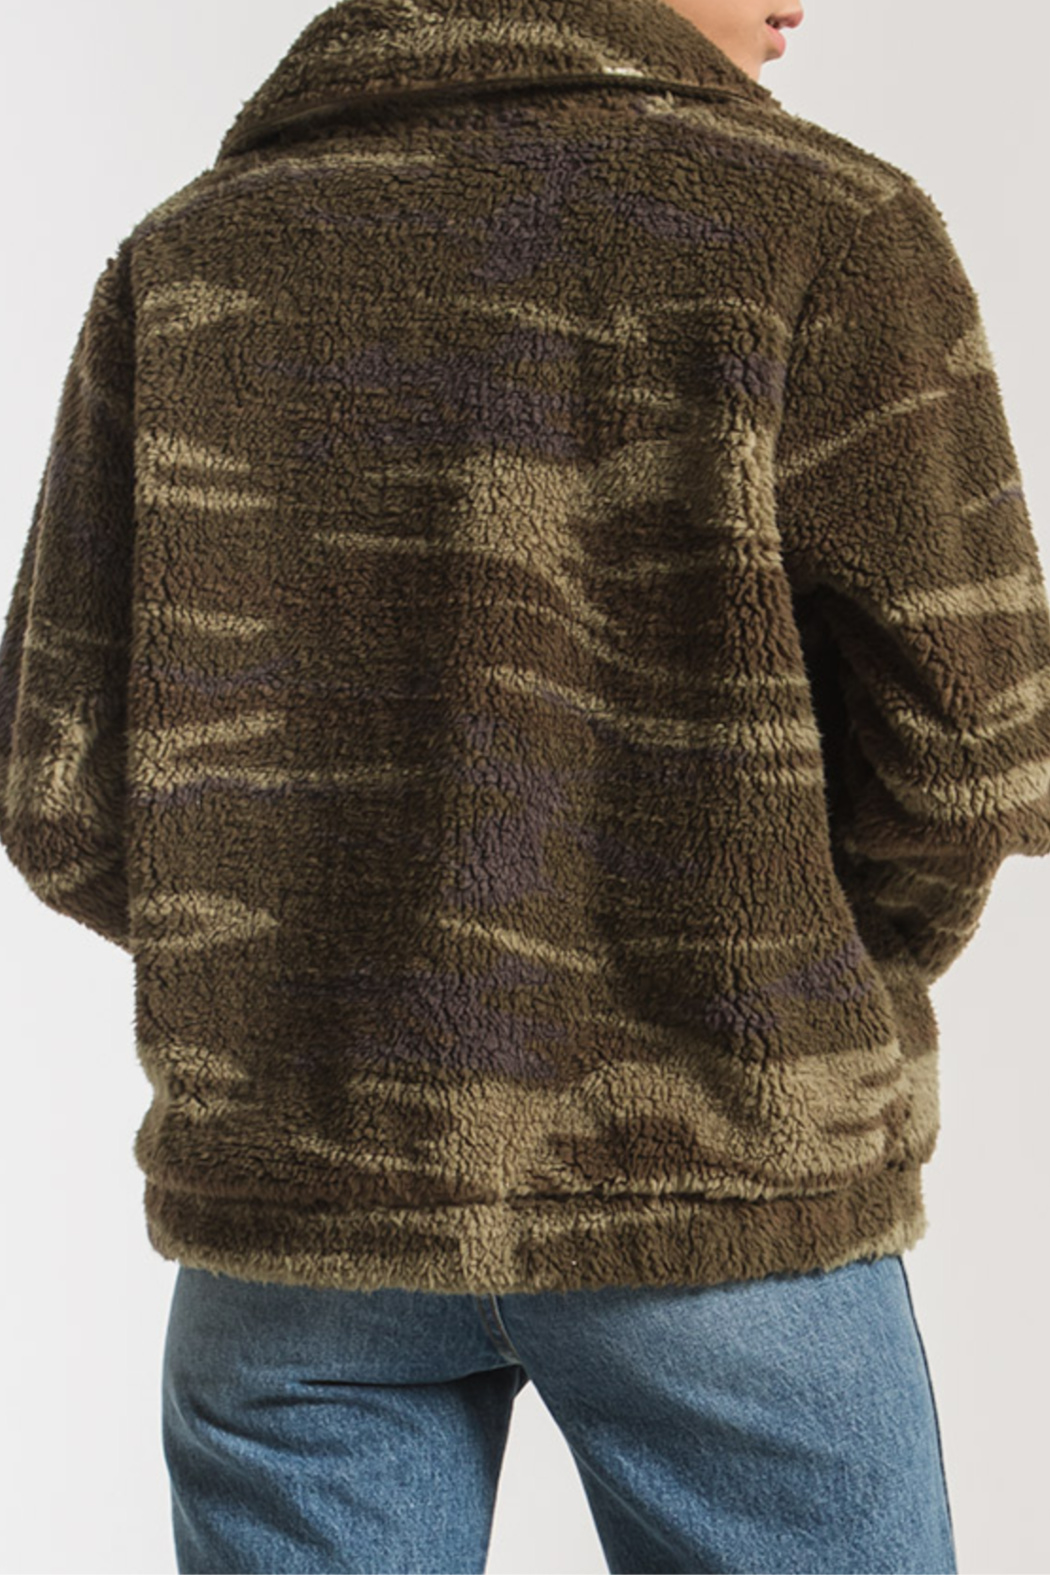 z supply Camo Sherpa Crop Jacket - Front Full Image